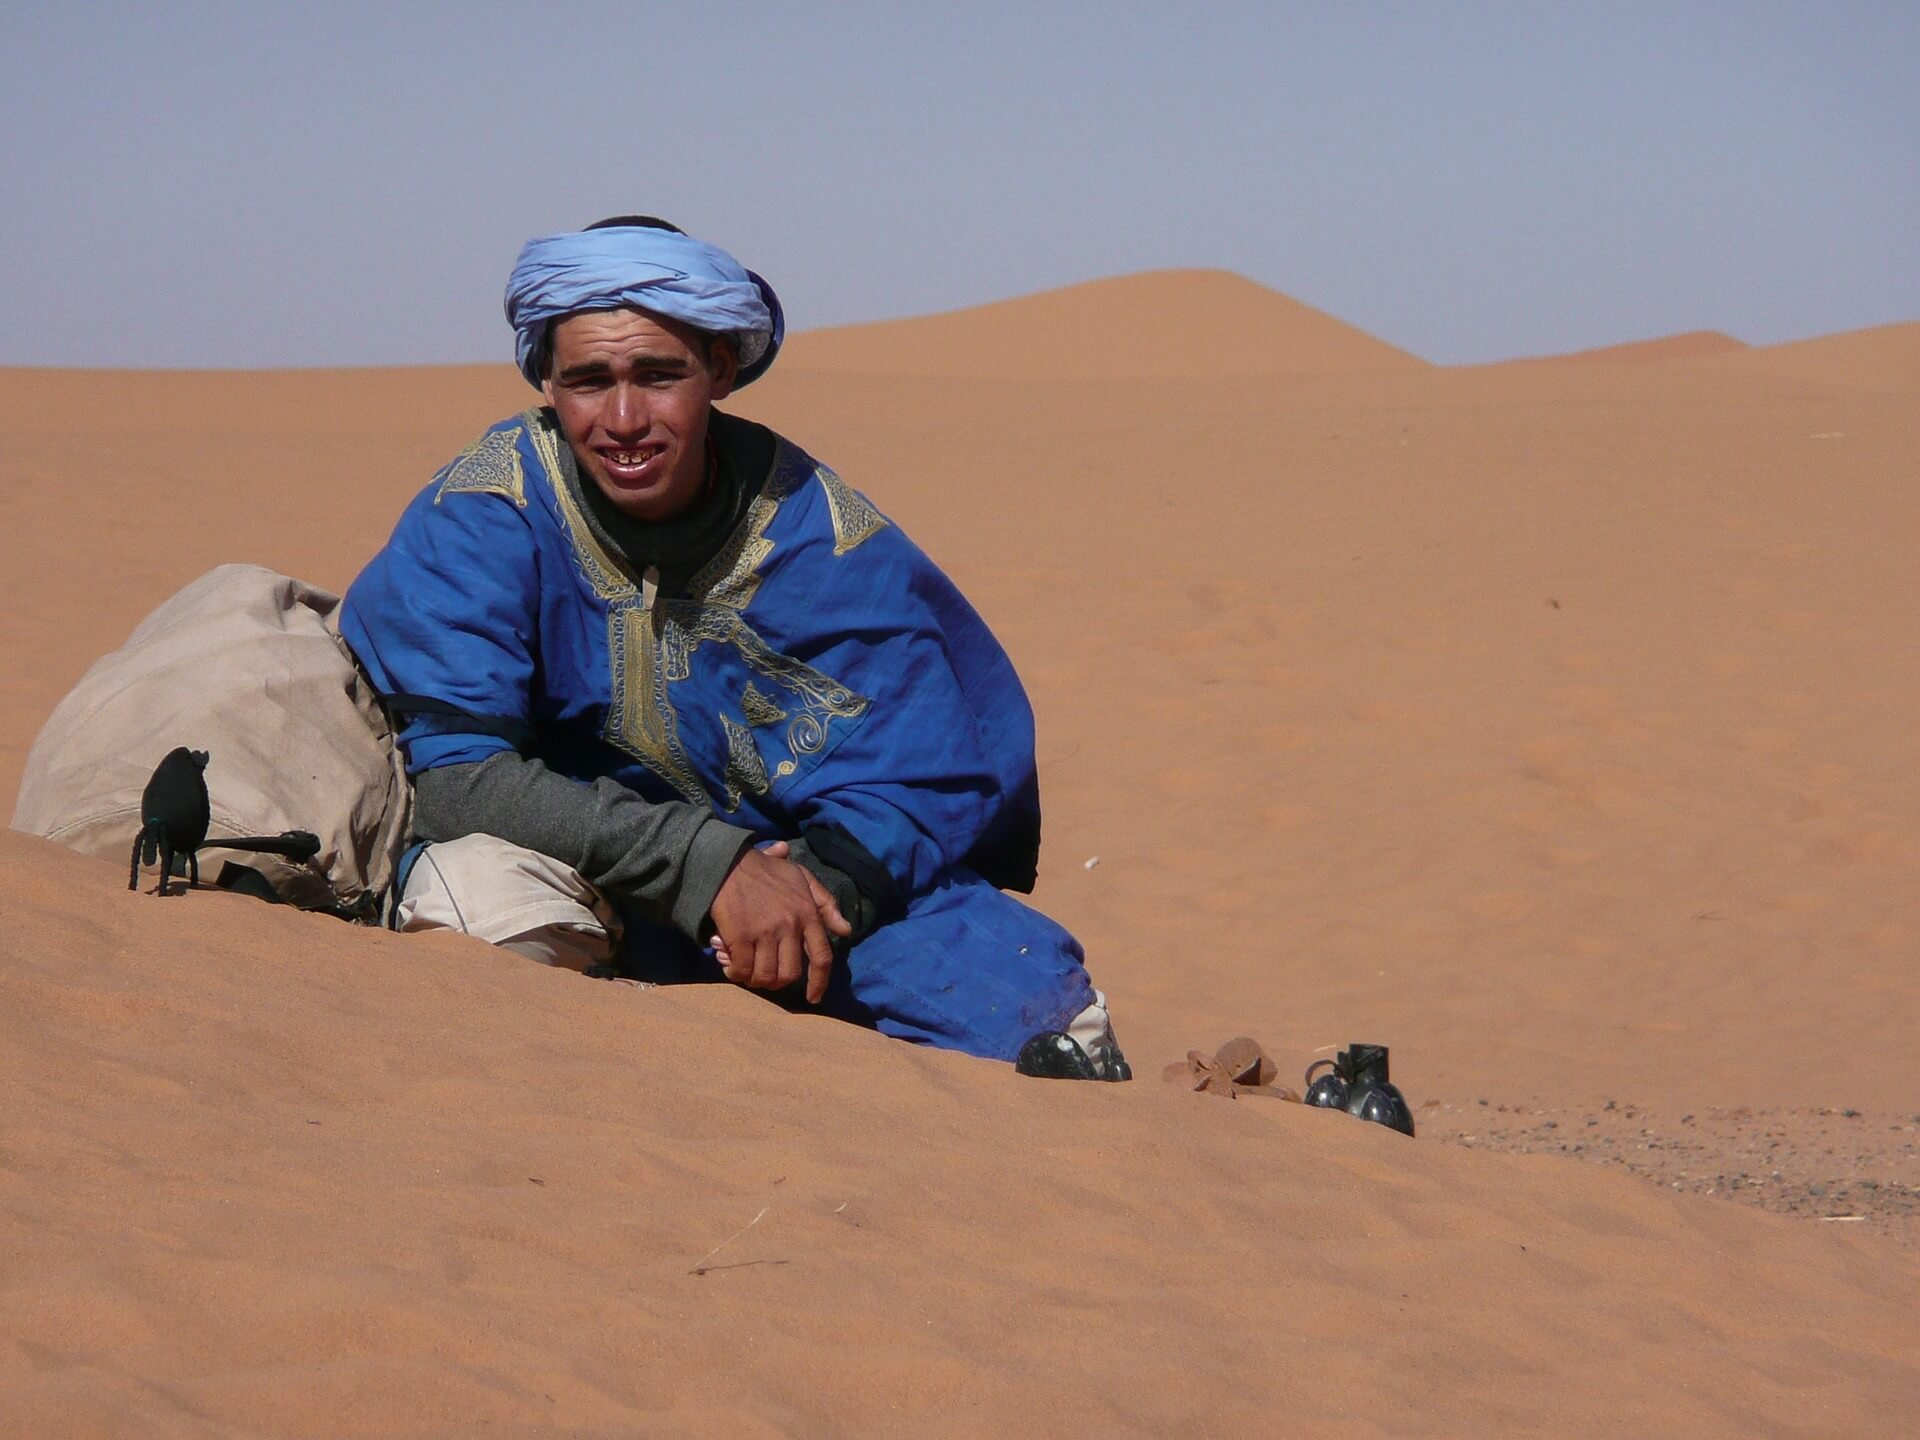 Sahara Desert Tour - Get To Know Morocco - Facts about Morocco's culture